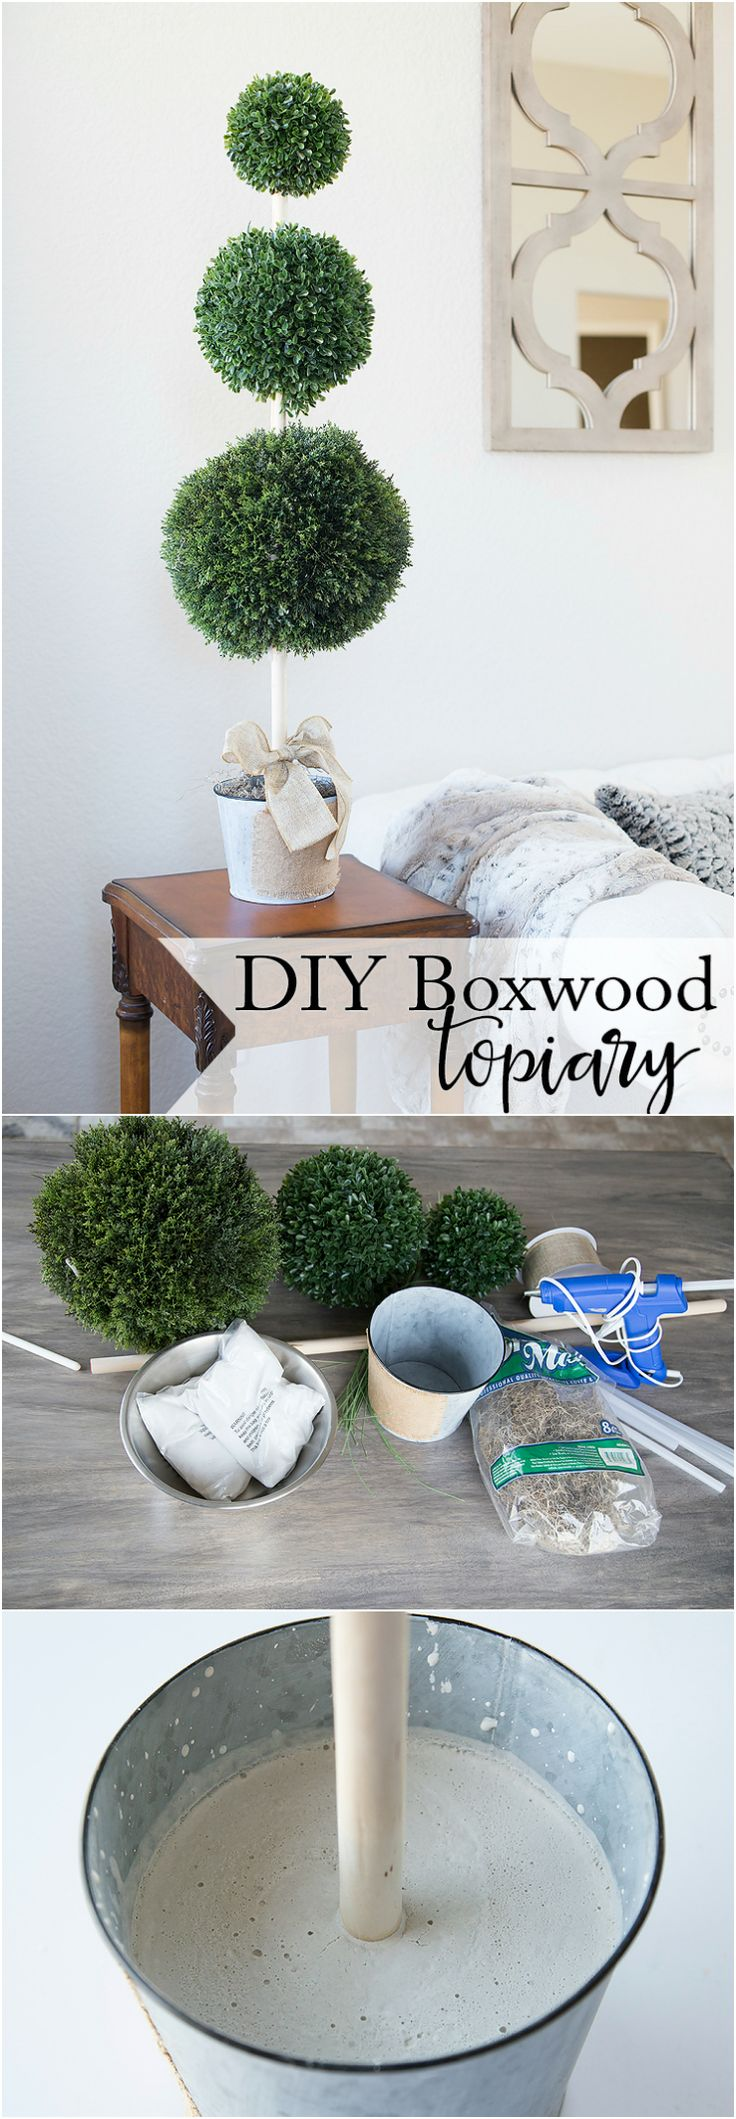 Tiered Boxwood DIY Topiary